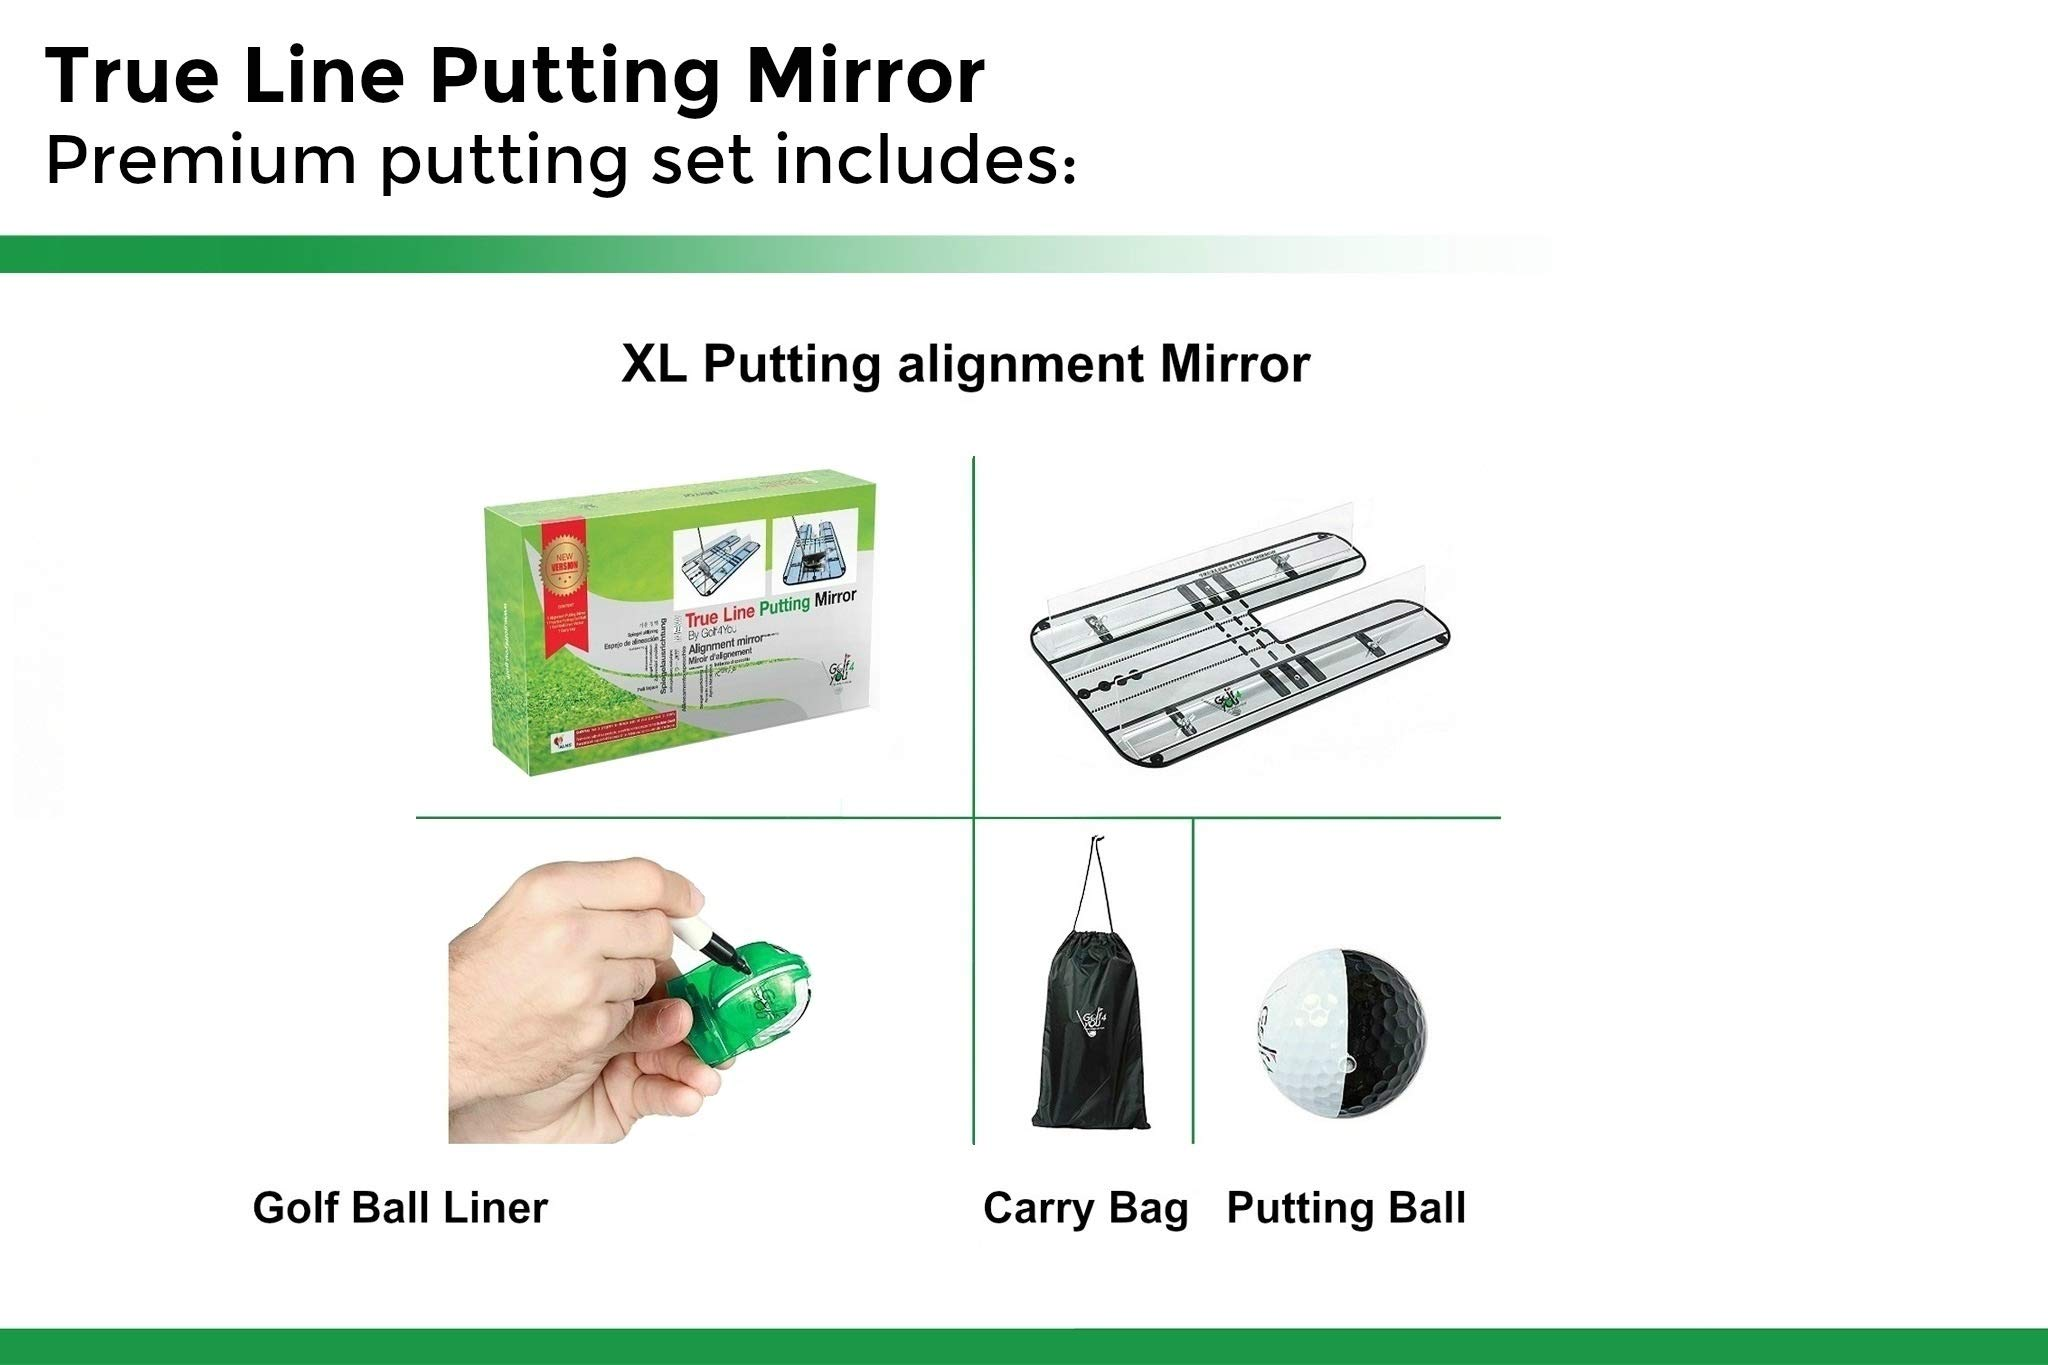 Golf Training Aid, Putting Set - XL Alignment Mirror Design with Our Exclusive Clear Adjustable Guide Rails ''True Line Putting Mirror'' - Leading Practice Aid for On-Line, Consistent Putting Stroke by GOLF4 YOU THE WORLD OF GOLF (Image #9)